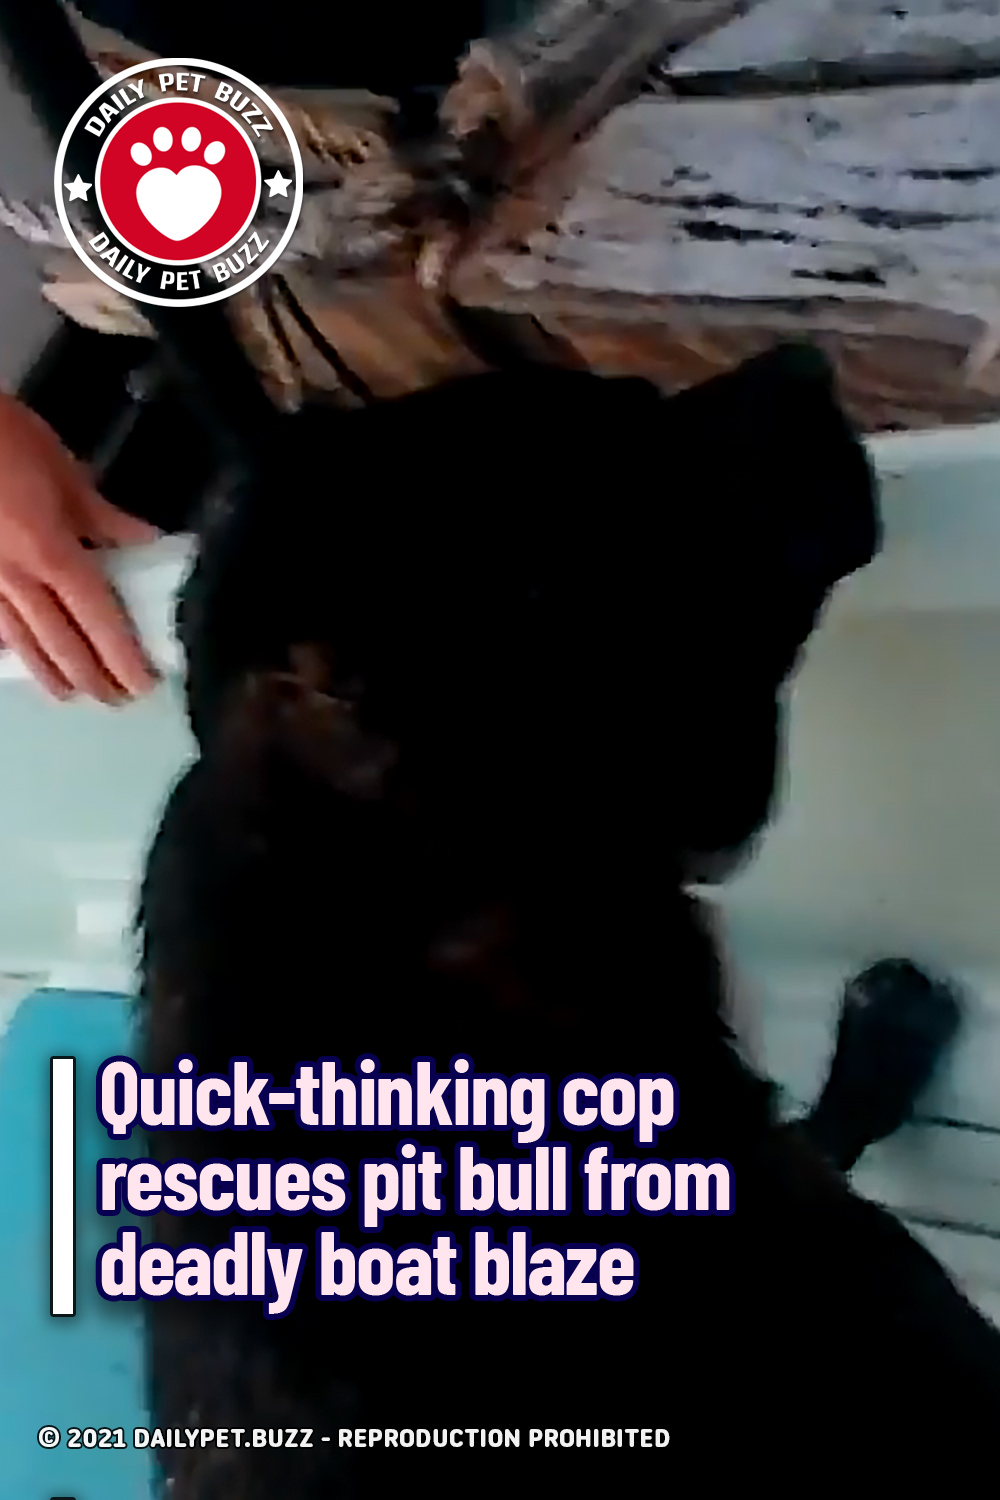 Quick-thinking cop rescues pit bull from deadly boat blaze